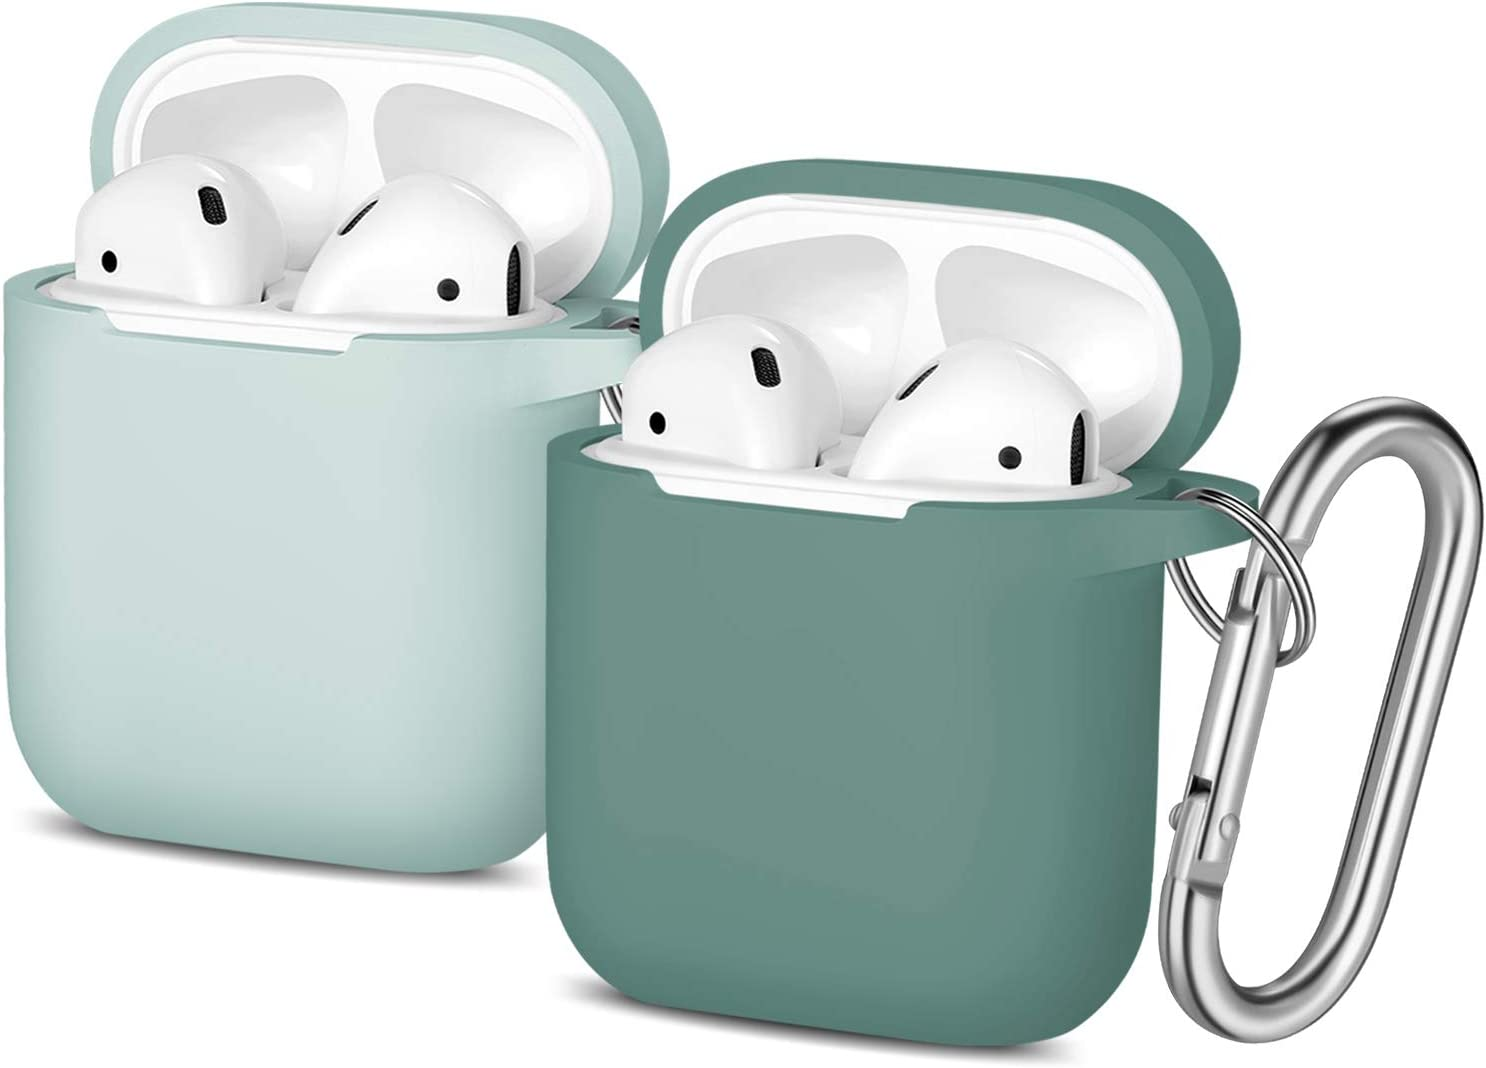 Easuny Silicone Case Compatible for Apple AirPods Matte - 2 Pack Cover for Airpod 2 & 1 Protective Skin [Front LED Visible] Wireless Charging Case Women Men, Pine Green & Aqua